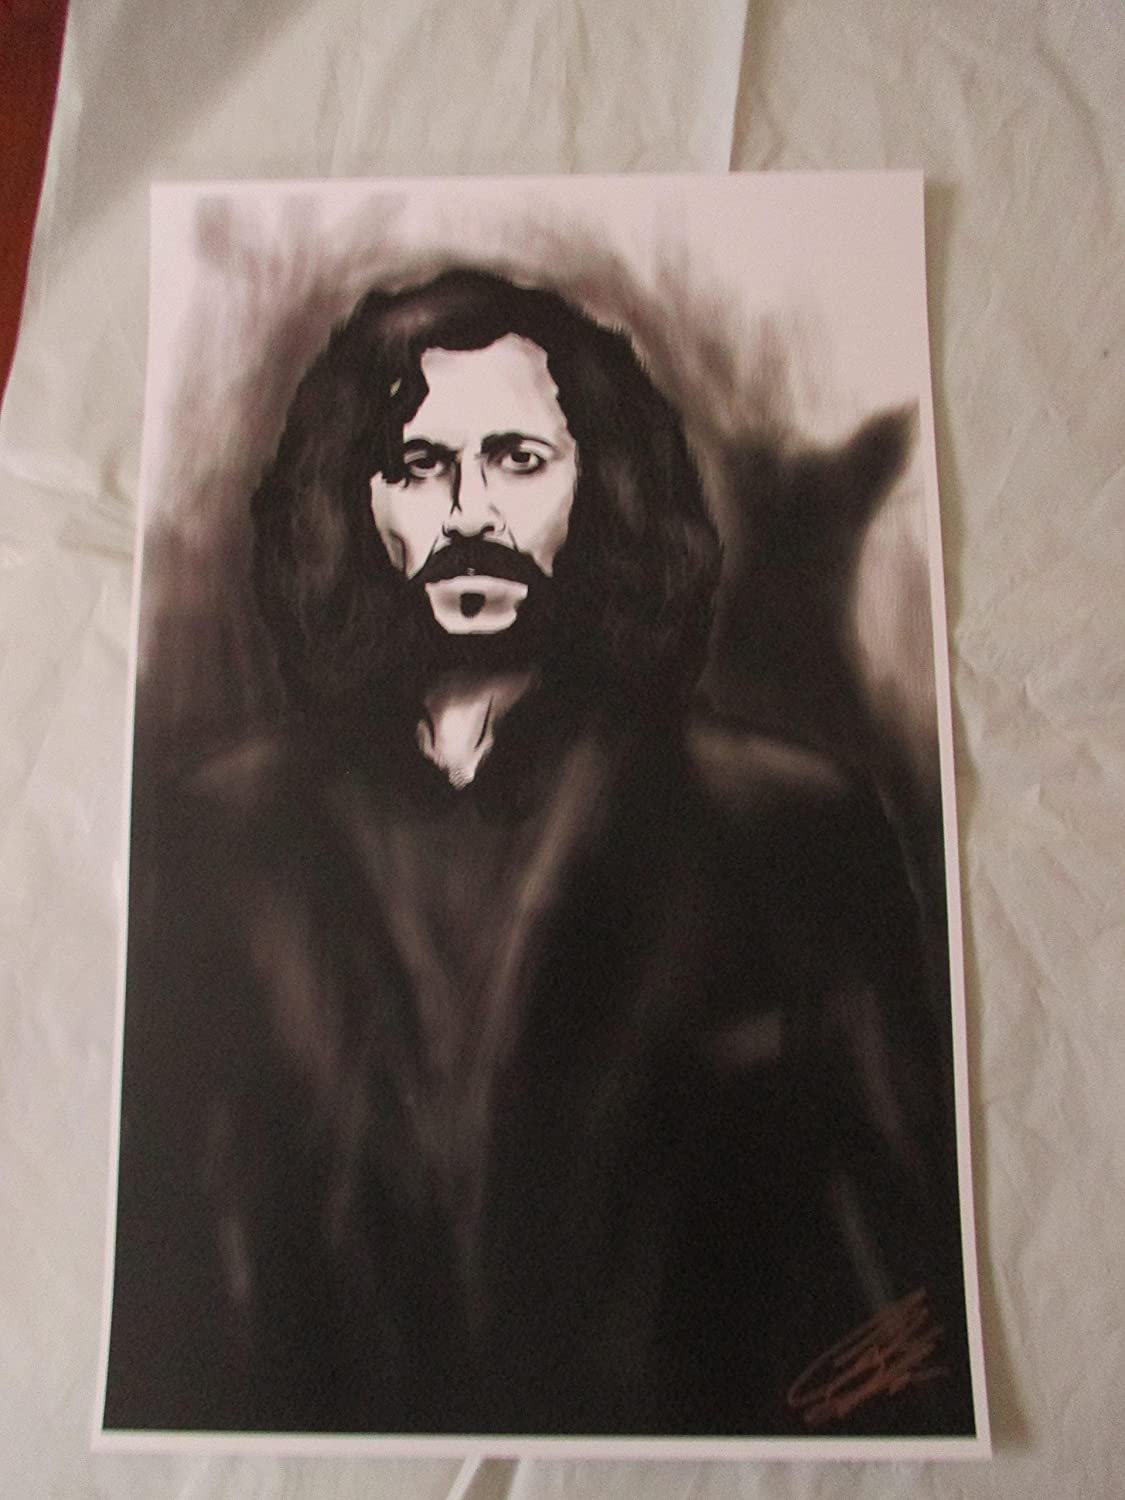 SIRIUS BLACK FROM HARRY POTTER! 11' By 17' Limited Edition Print Signed By Chris Huffman, W/coa SIRIUS BLACK FROM HARRY POTTER! 11 By 17 Limited Edition Print Signed By Chris Huffman